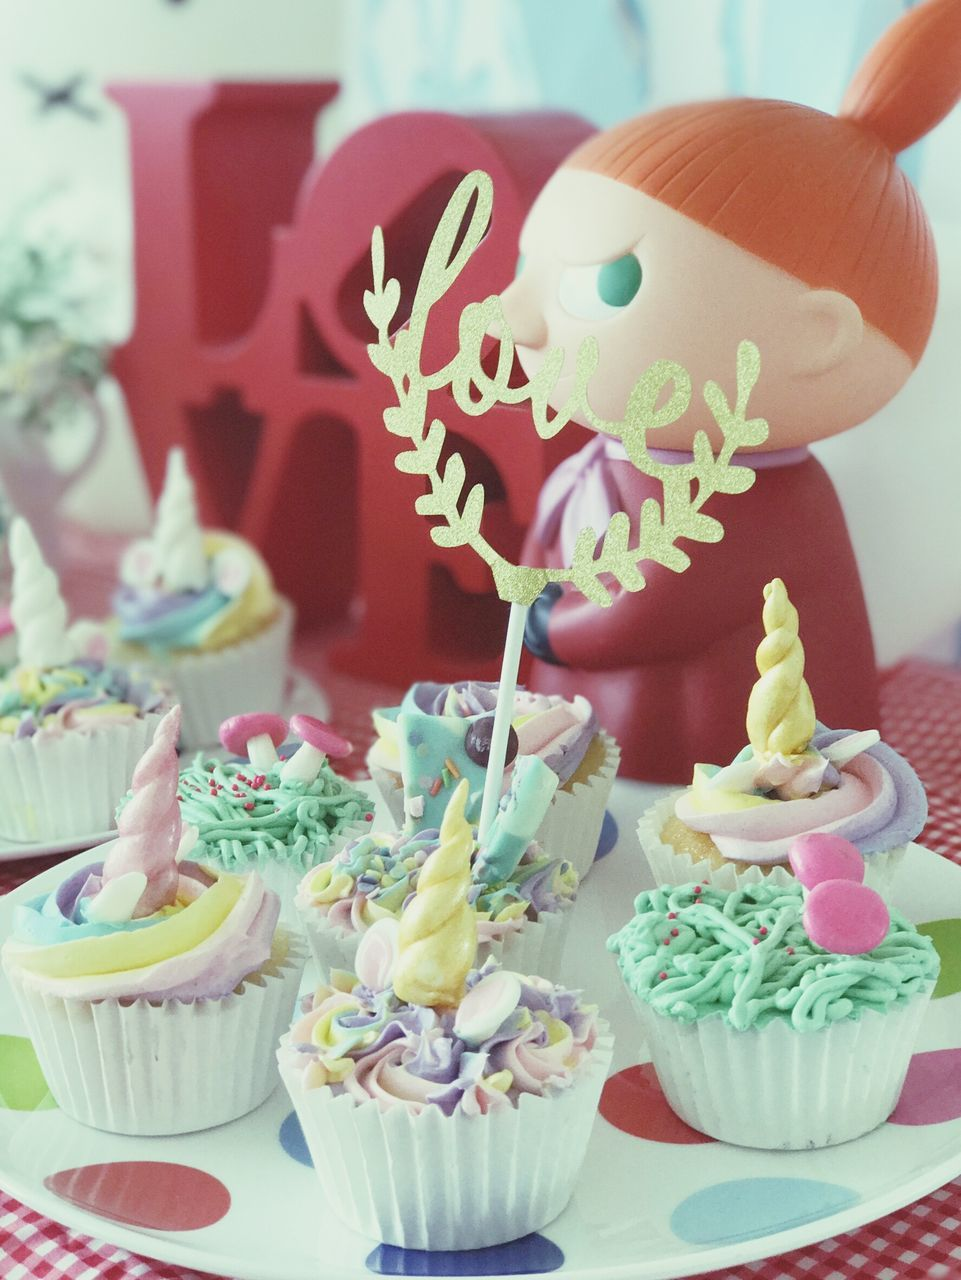 sweet food, food and drink, indulgence, dessert, temptation, cupcake, freshness, food, unhealthy eating, indoors, celebration, sprinkles, table, close-up, cake, ready-to-eat, no people, day